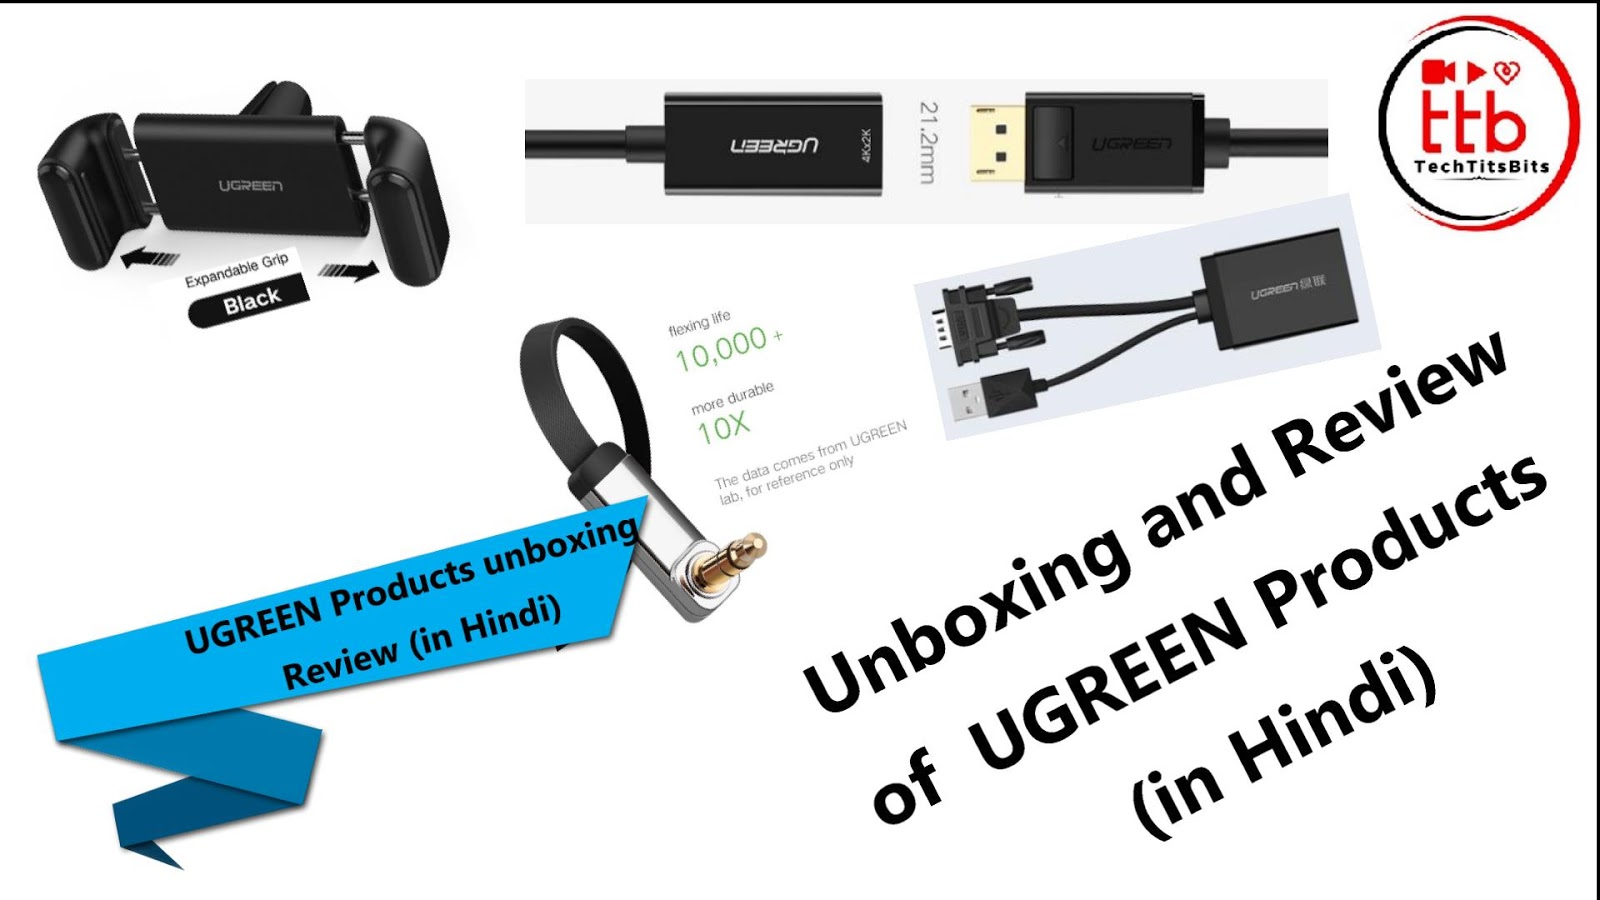 c8d0c4f8635 Ugreen unboxing HDMI Cable! Car Mobile Holder!VGA to HDMI